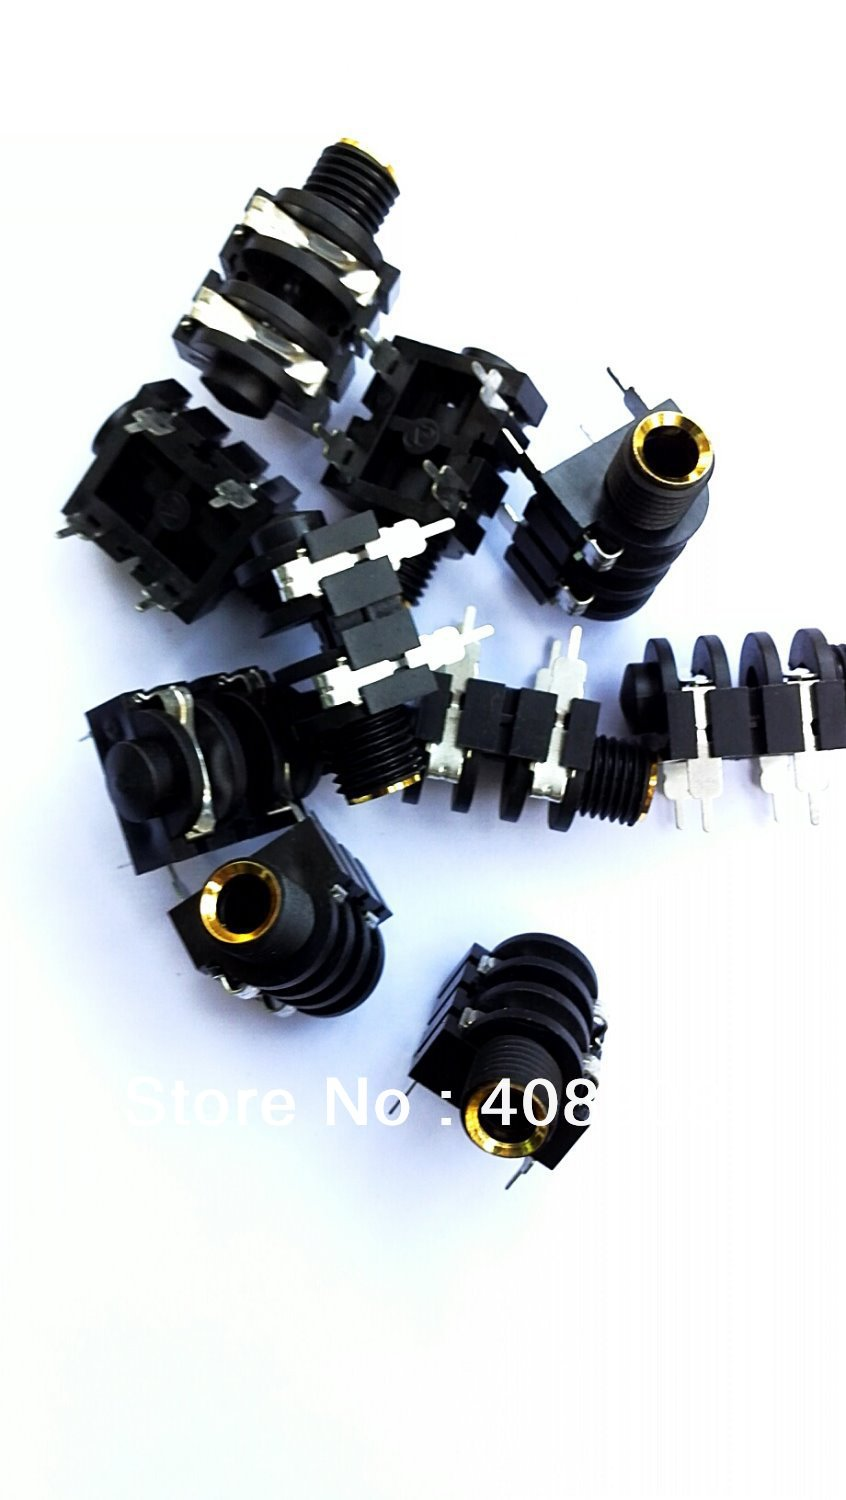 aliexpress com buy 10pcs 6 35mm mono headphone jack microphone 1 aliexpress com buy 10pcs 6 35mm mono headphone jack microphone 1 4 panel wiring socket amplifiers 1 4 6 35mm mono jack socket panel from reliable 4 wire